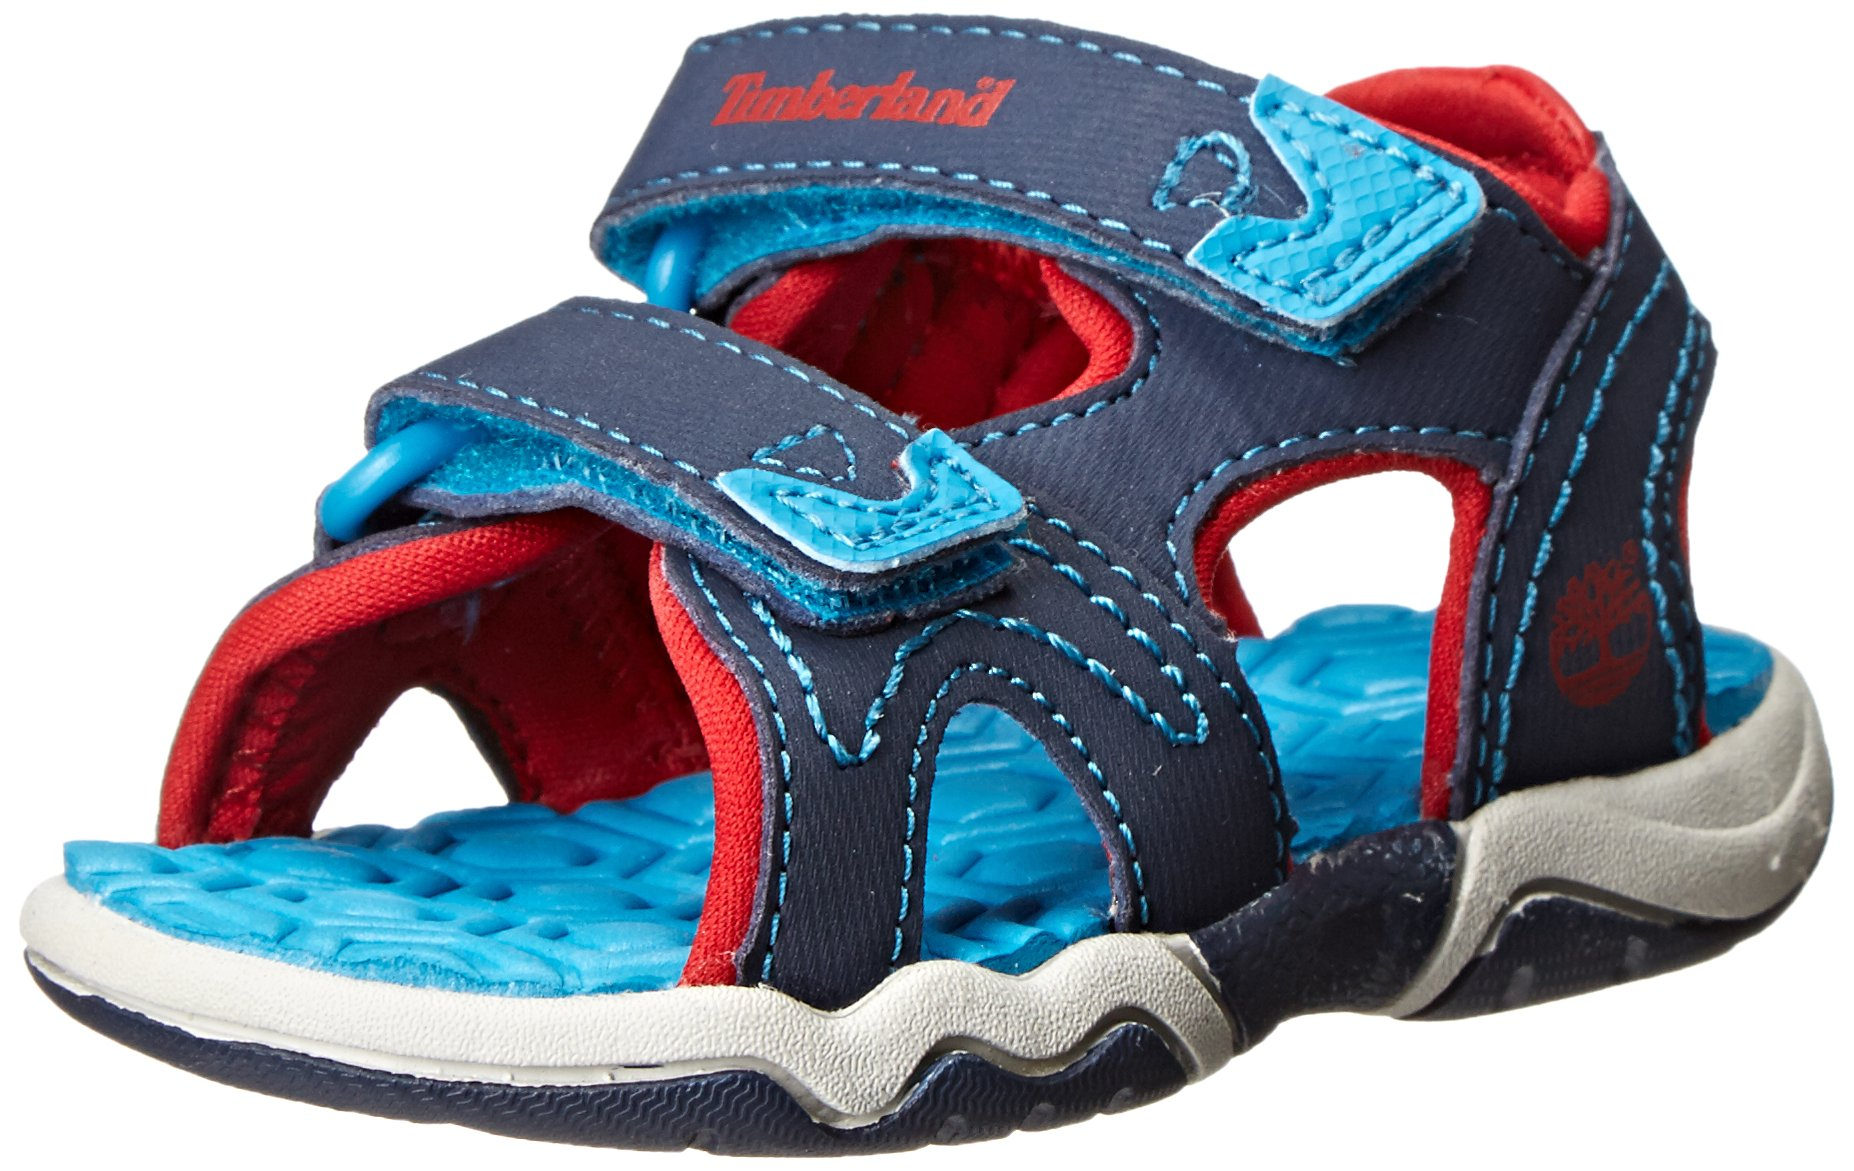 Timberland Adventure Seeker Two-Strap Sandal (Toddler/Little Kid),Navy/Blue/Red,5 M US Toddler by Timberland